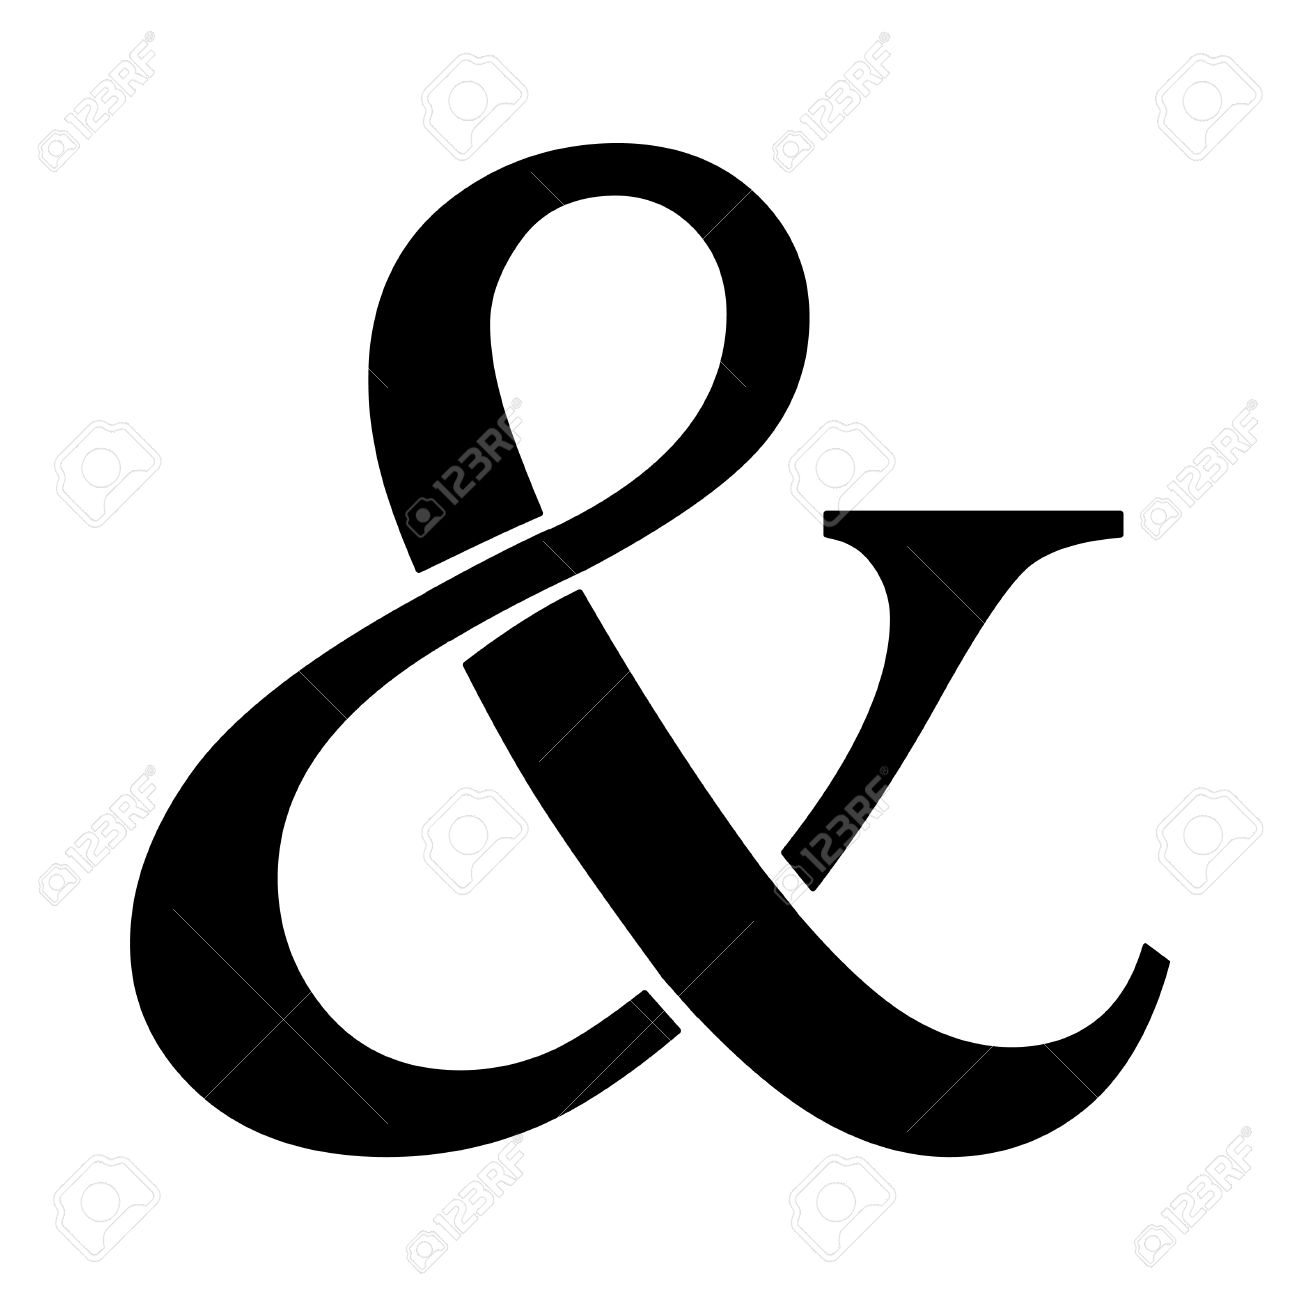 ampersand vector icon royalty free cliparts vectors and stock